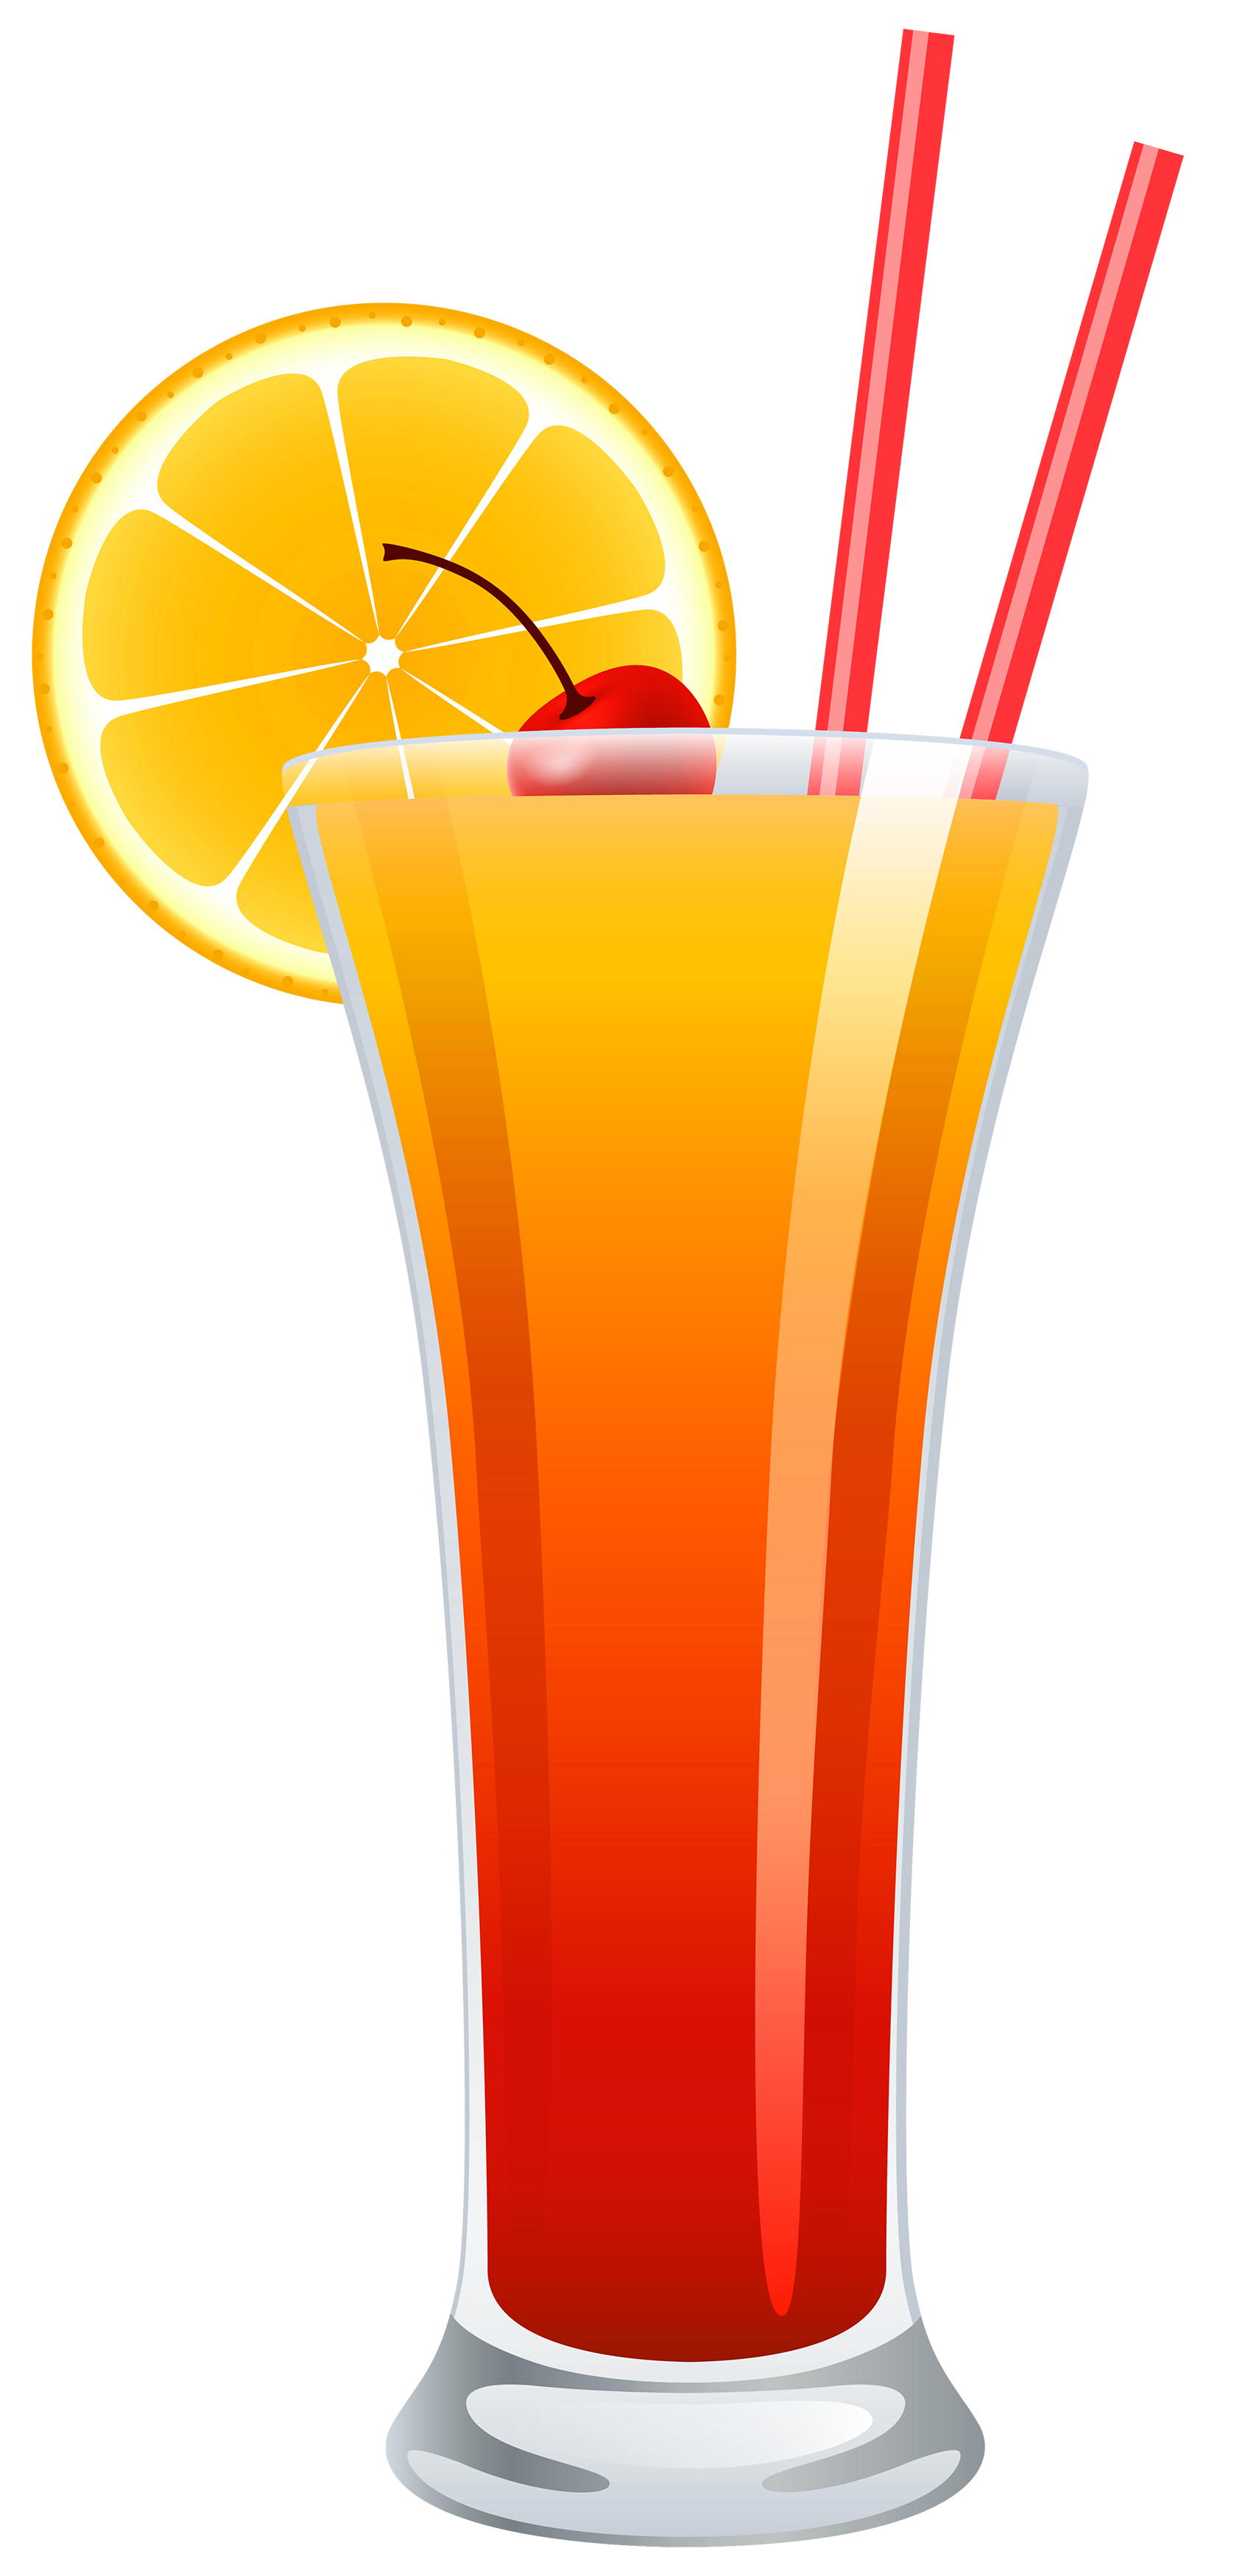 clip transparent Tequila sunrise png best. Cocktails clipart old fashioned cocktail